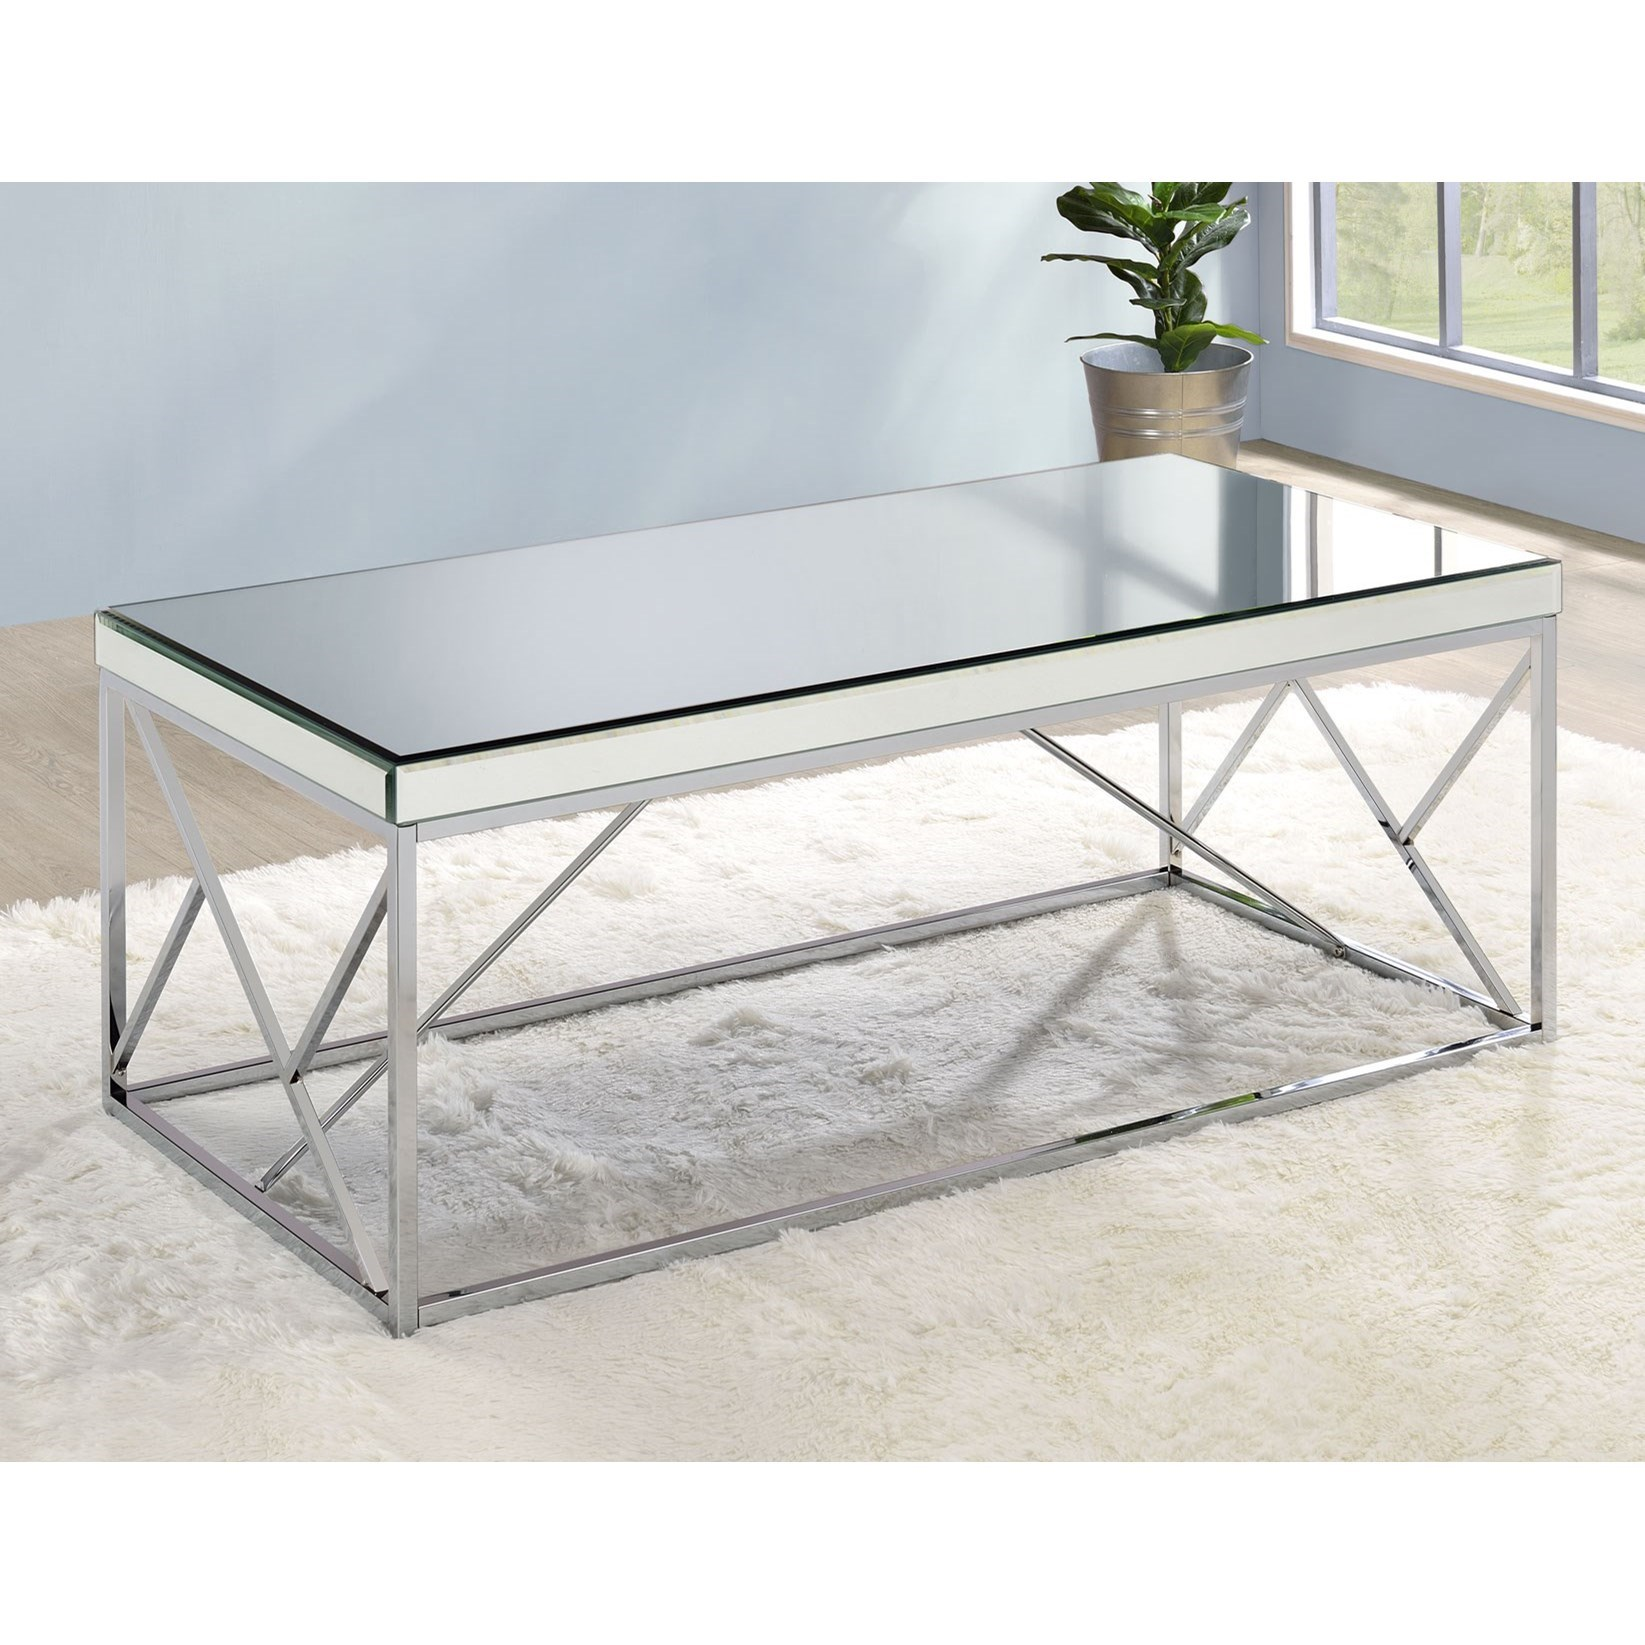 Evelyn Cocktail Table by Steve Silver at Walker's Furniture